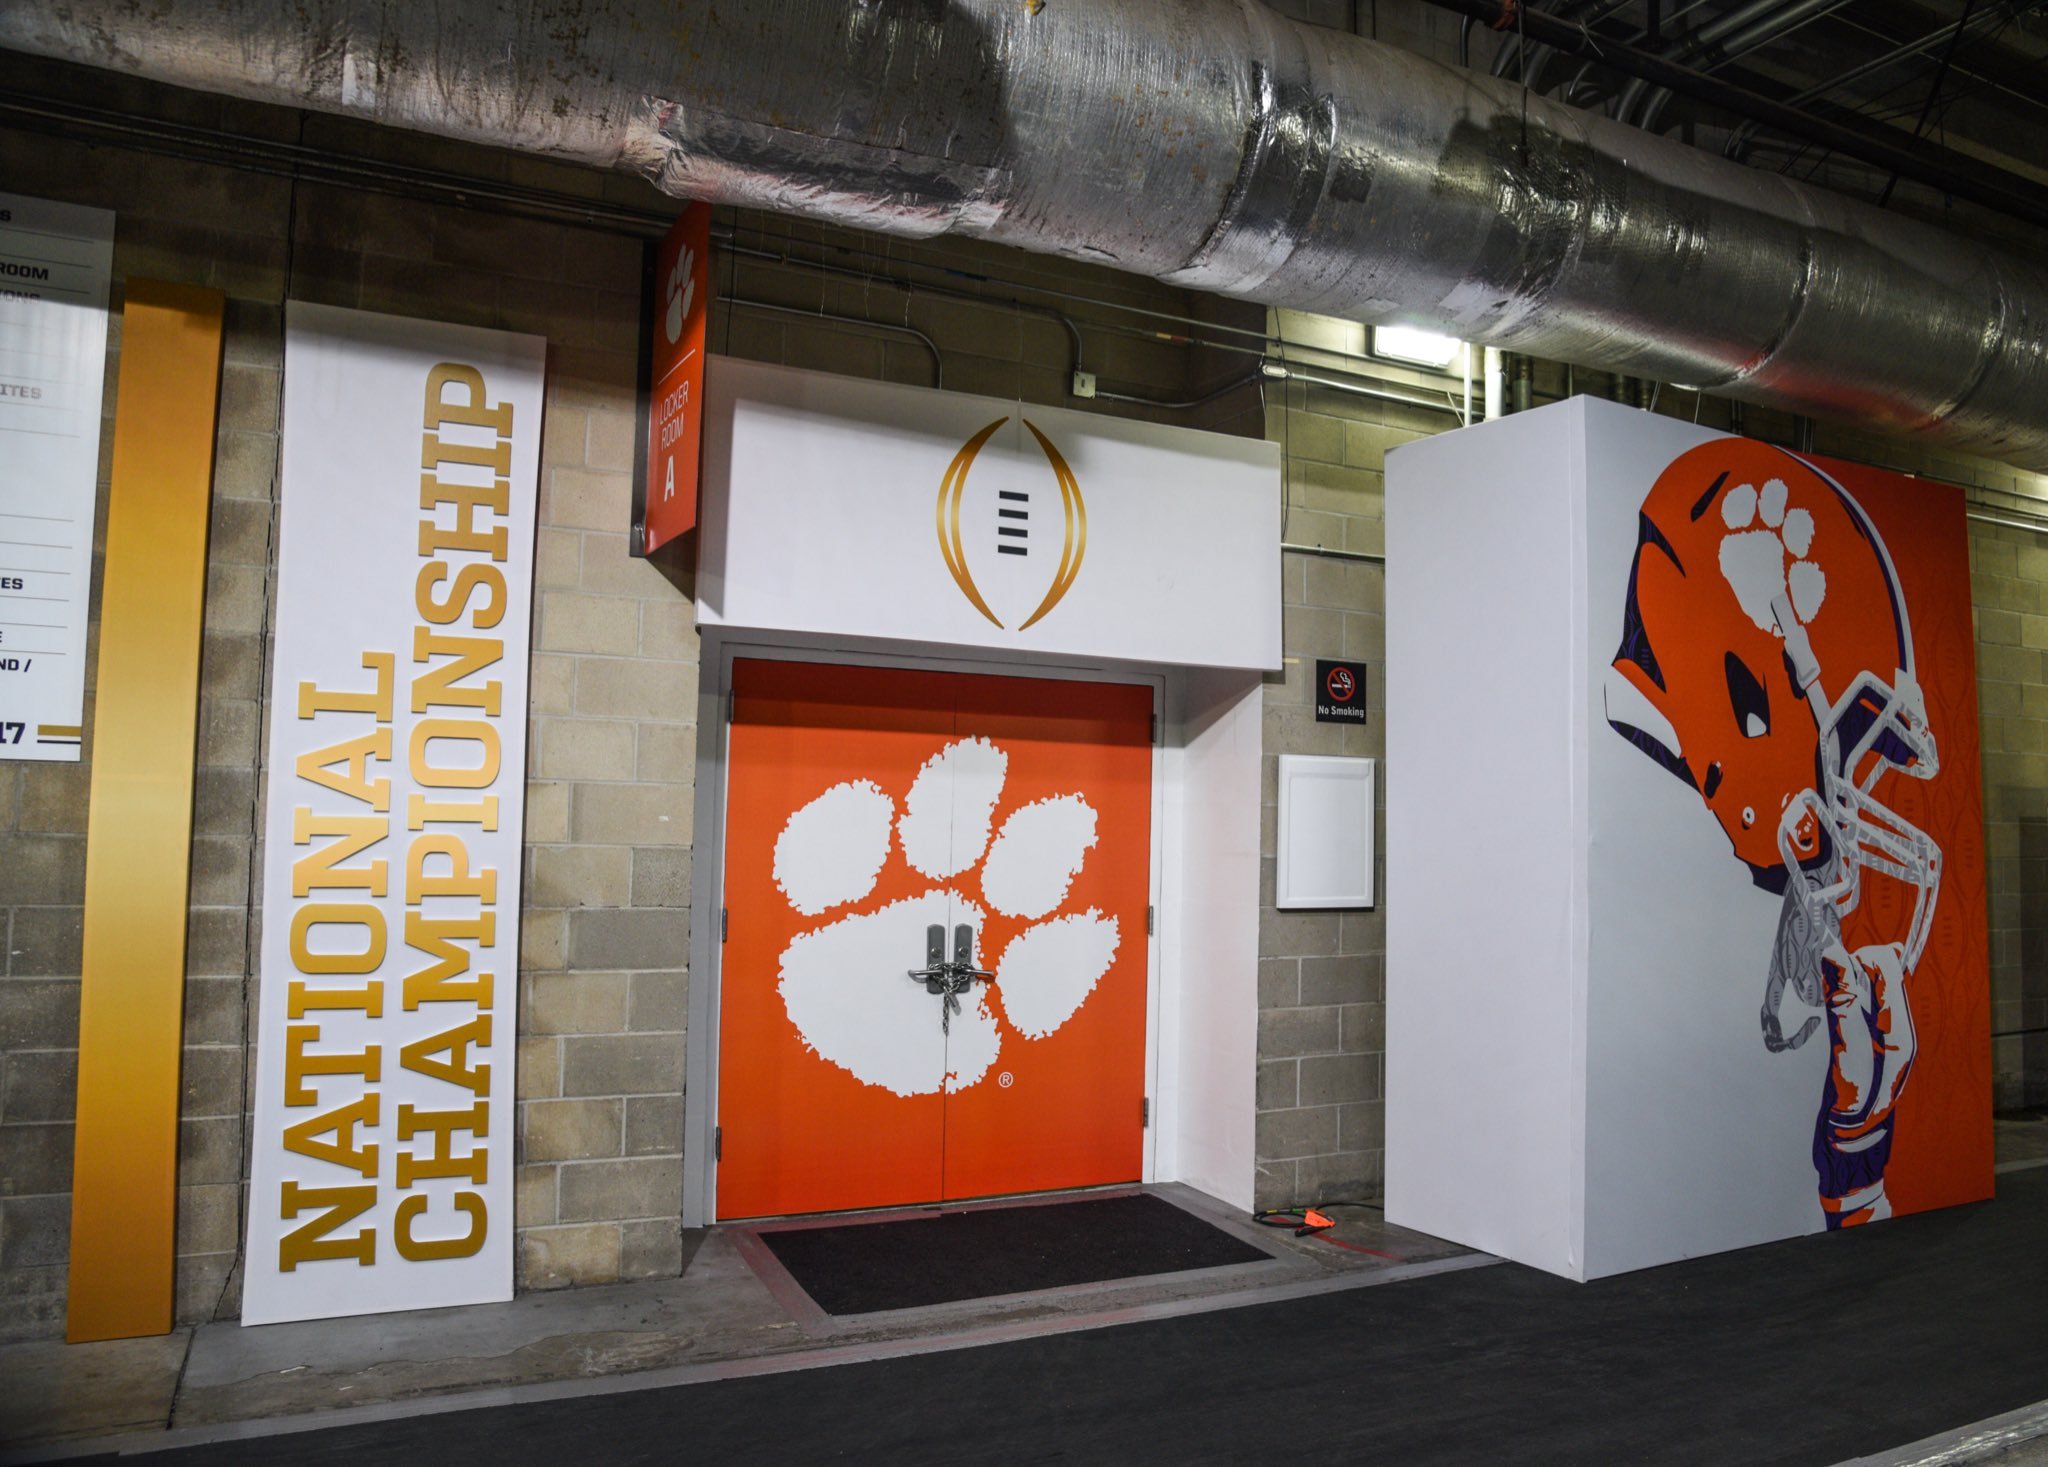 Locker room entrance looking nice...   #ALLIN #NationalChampionship https://t.co/MRSaXuEFlm